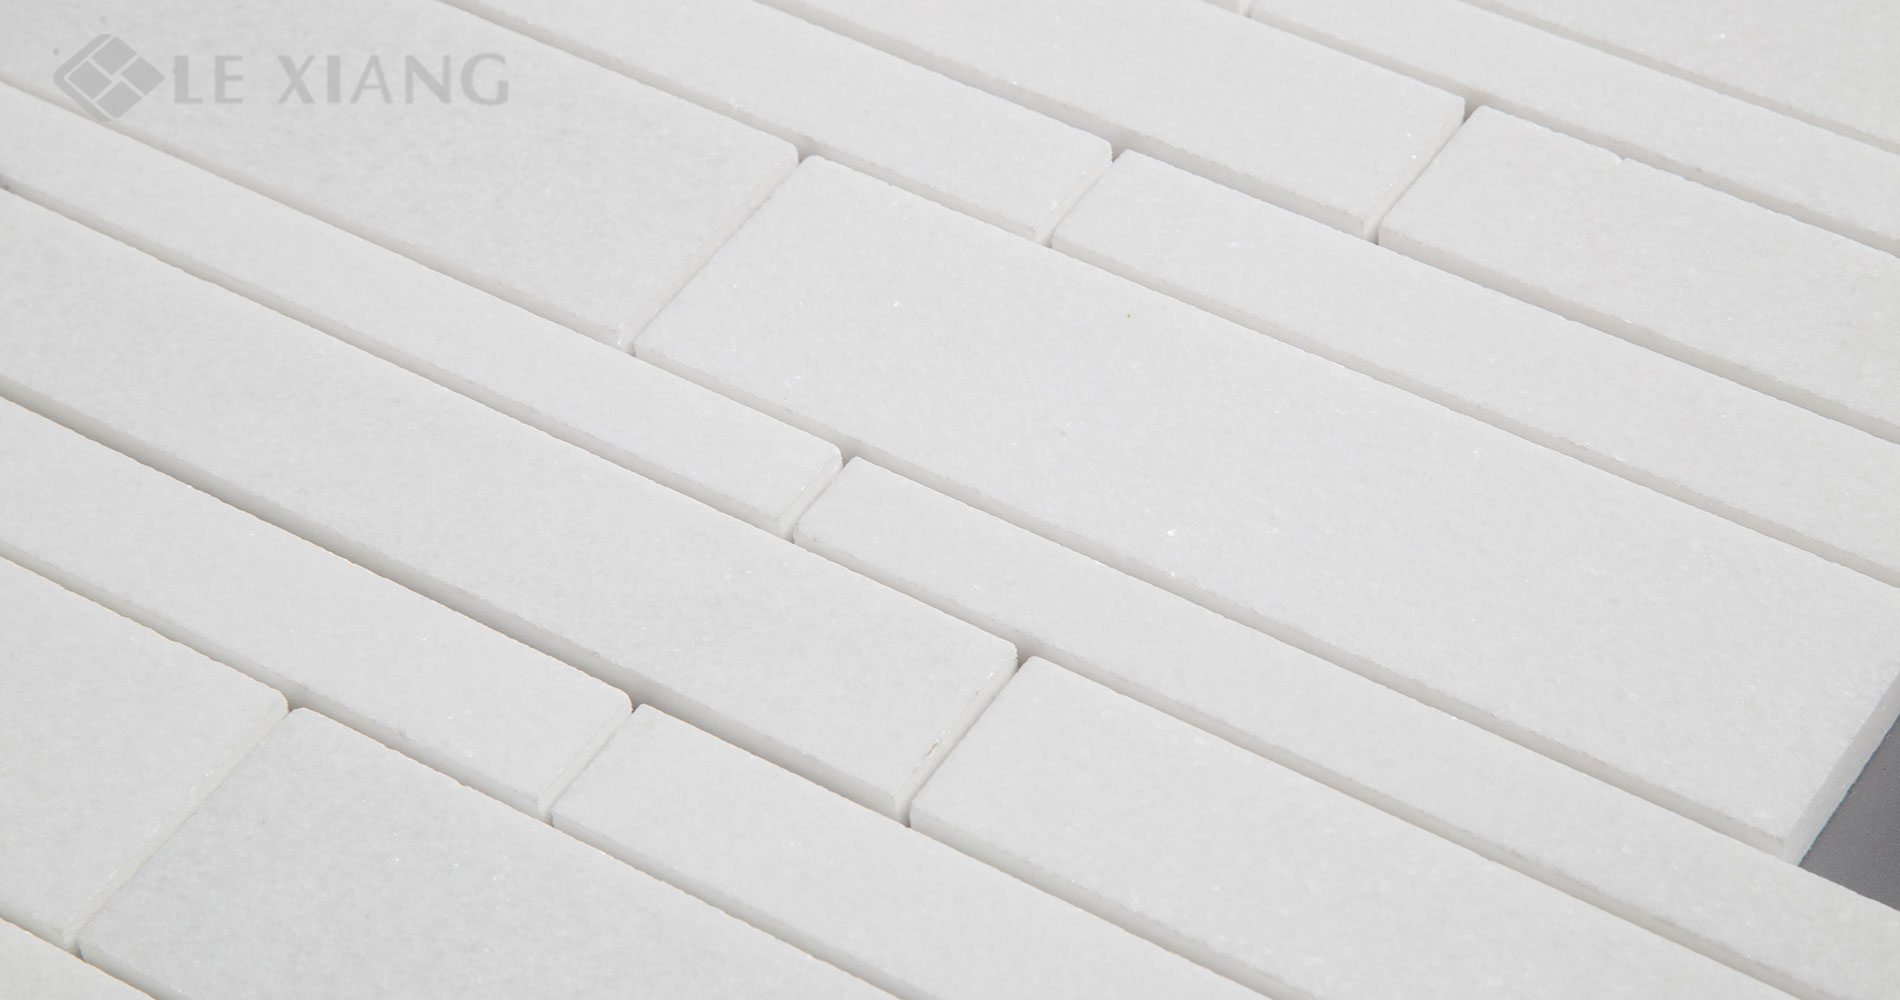 Marble-Strip-Mosaic-Tile-For-Kitchen-Backsplash-And-Bathroom-Floor-Backsplash-Wall-3-7